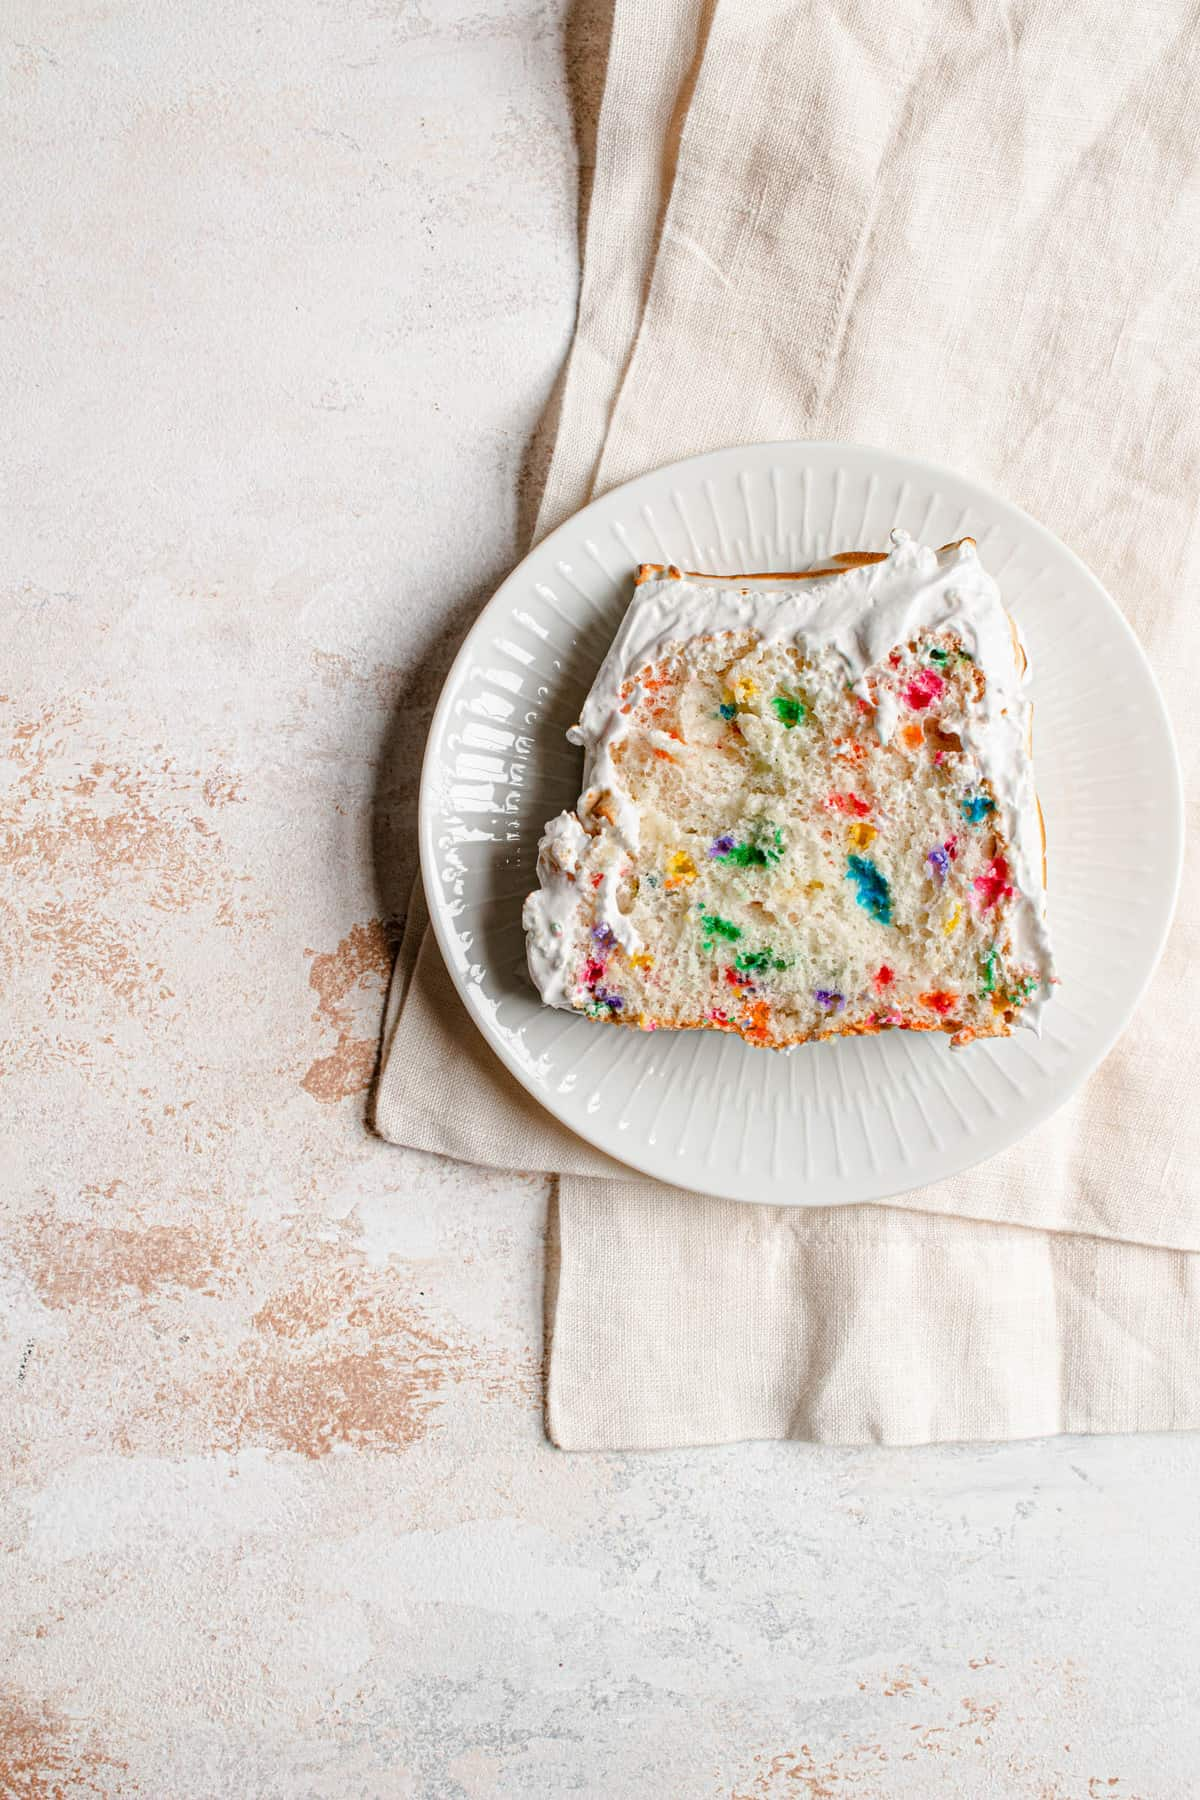 Funfetti angel food cake with marshmallow frosting